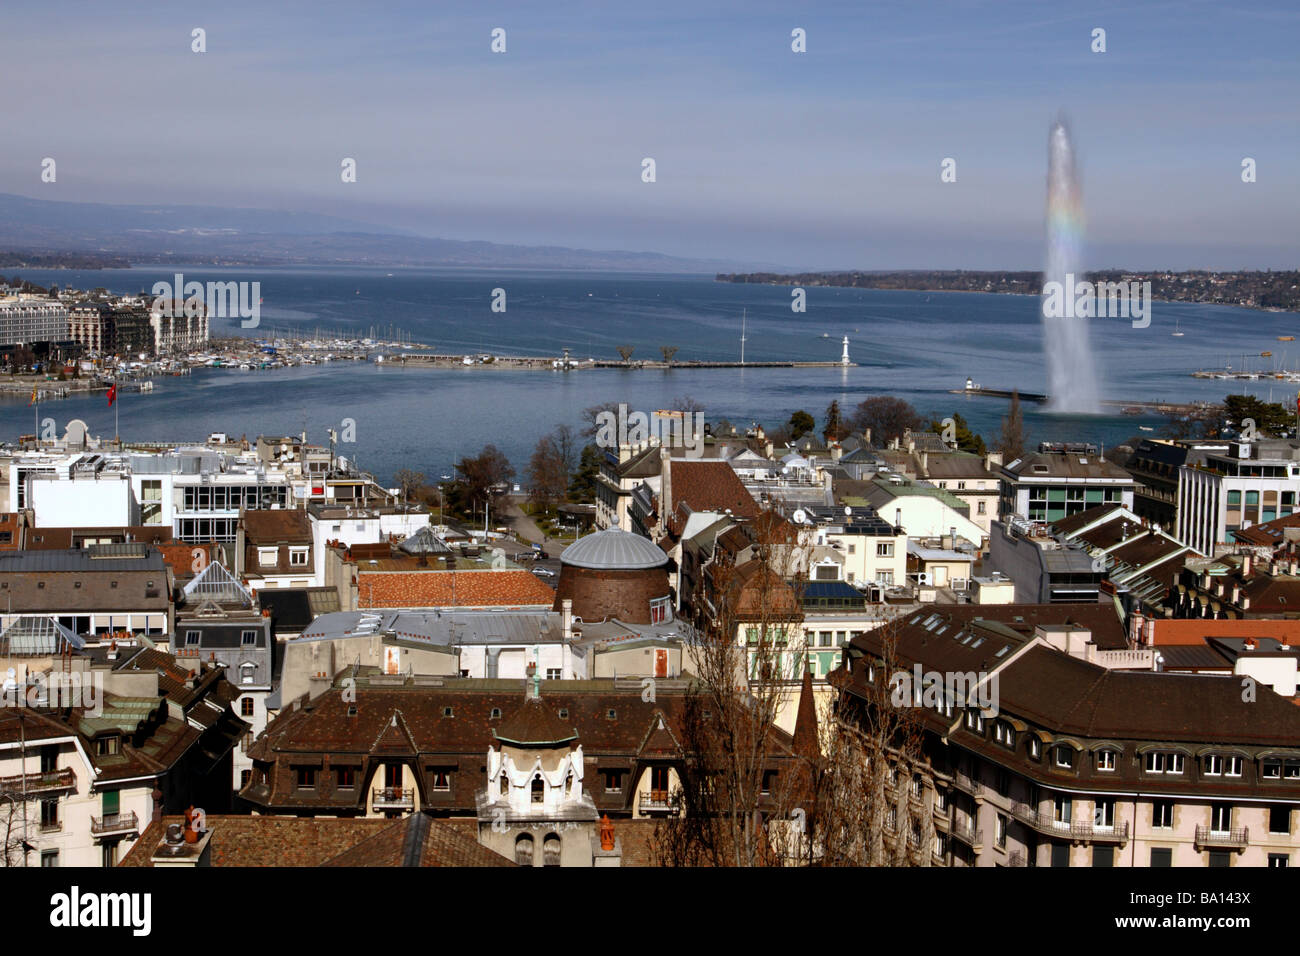 Lake Geneva (Lac Léman) and Jet d'Eau seen from St Peter's Cathedral, Geneva, Switzerland - Stock Image